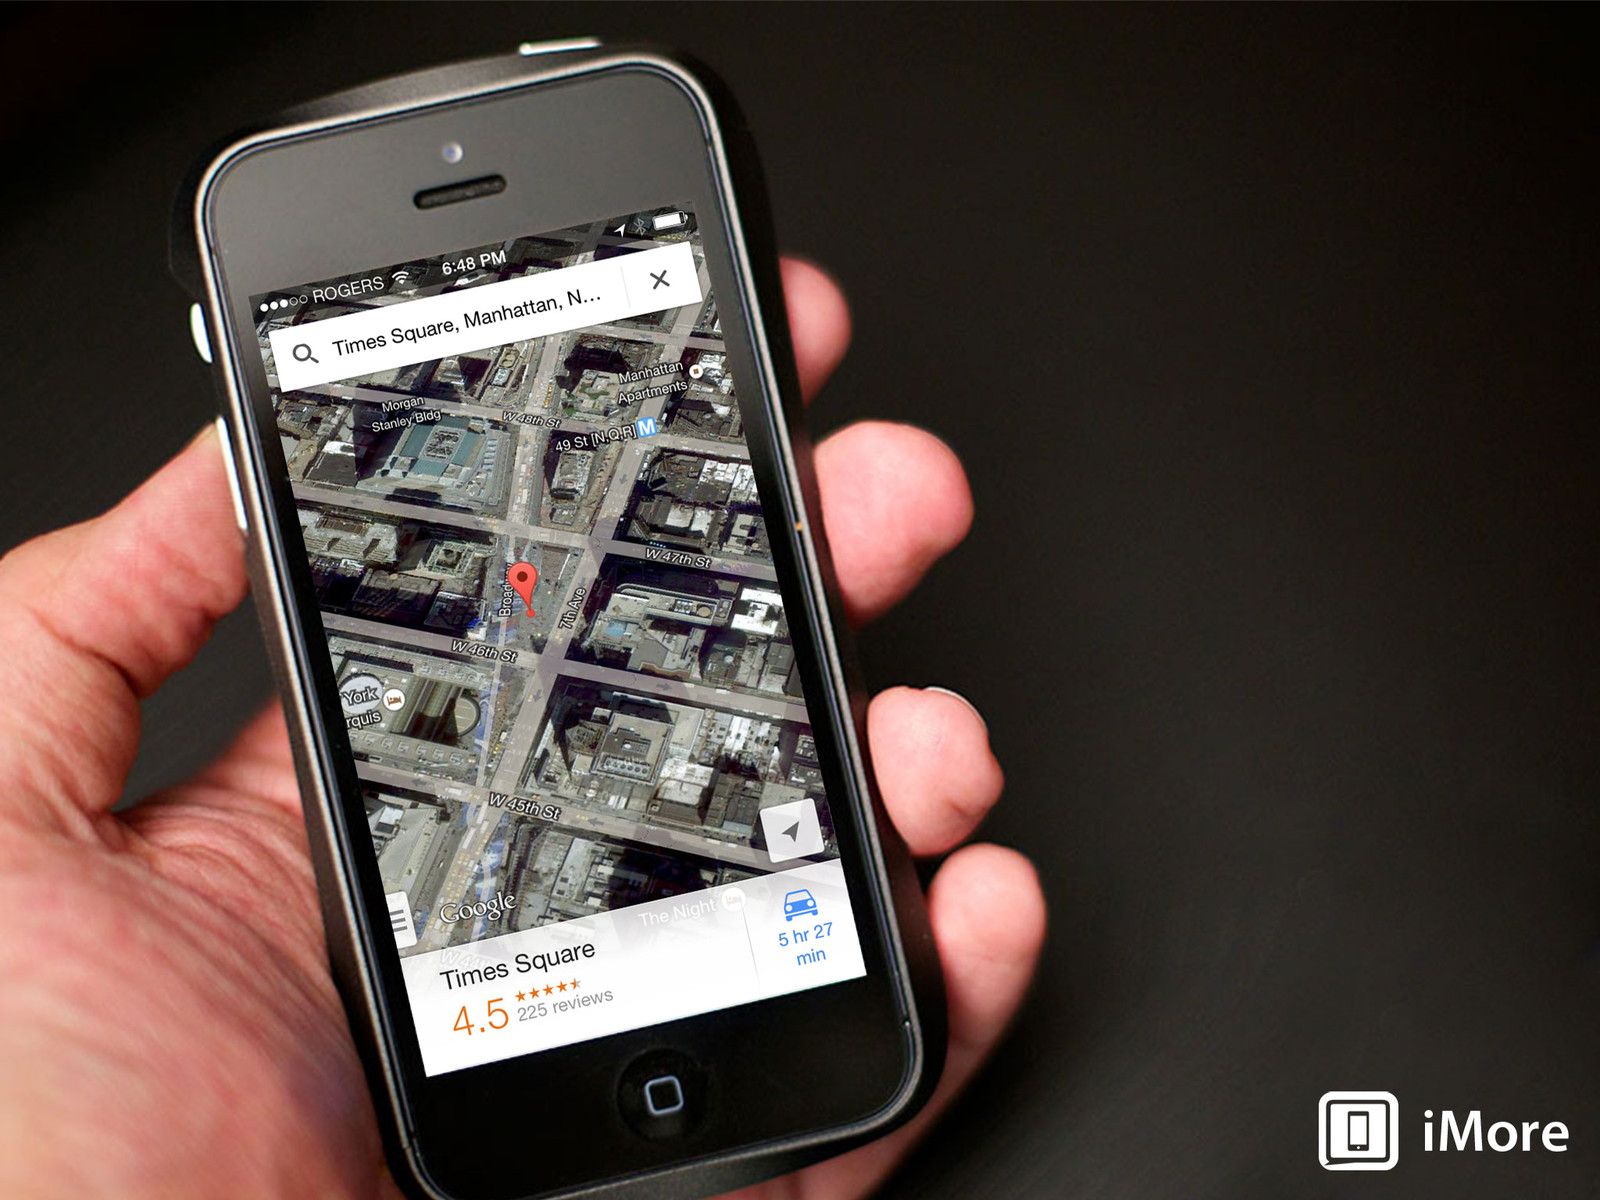 New and updated apps: Google Maps, Warhammer 40,000: Carnage, WebReaver and more!